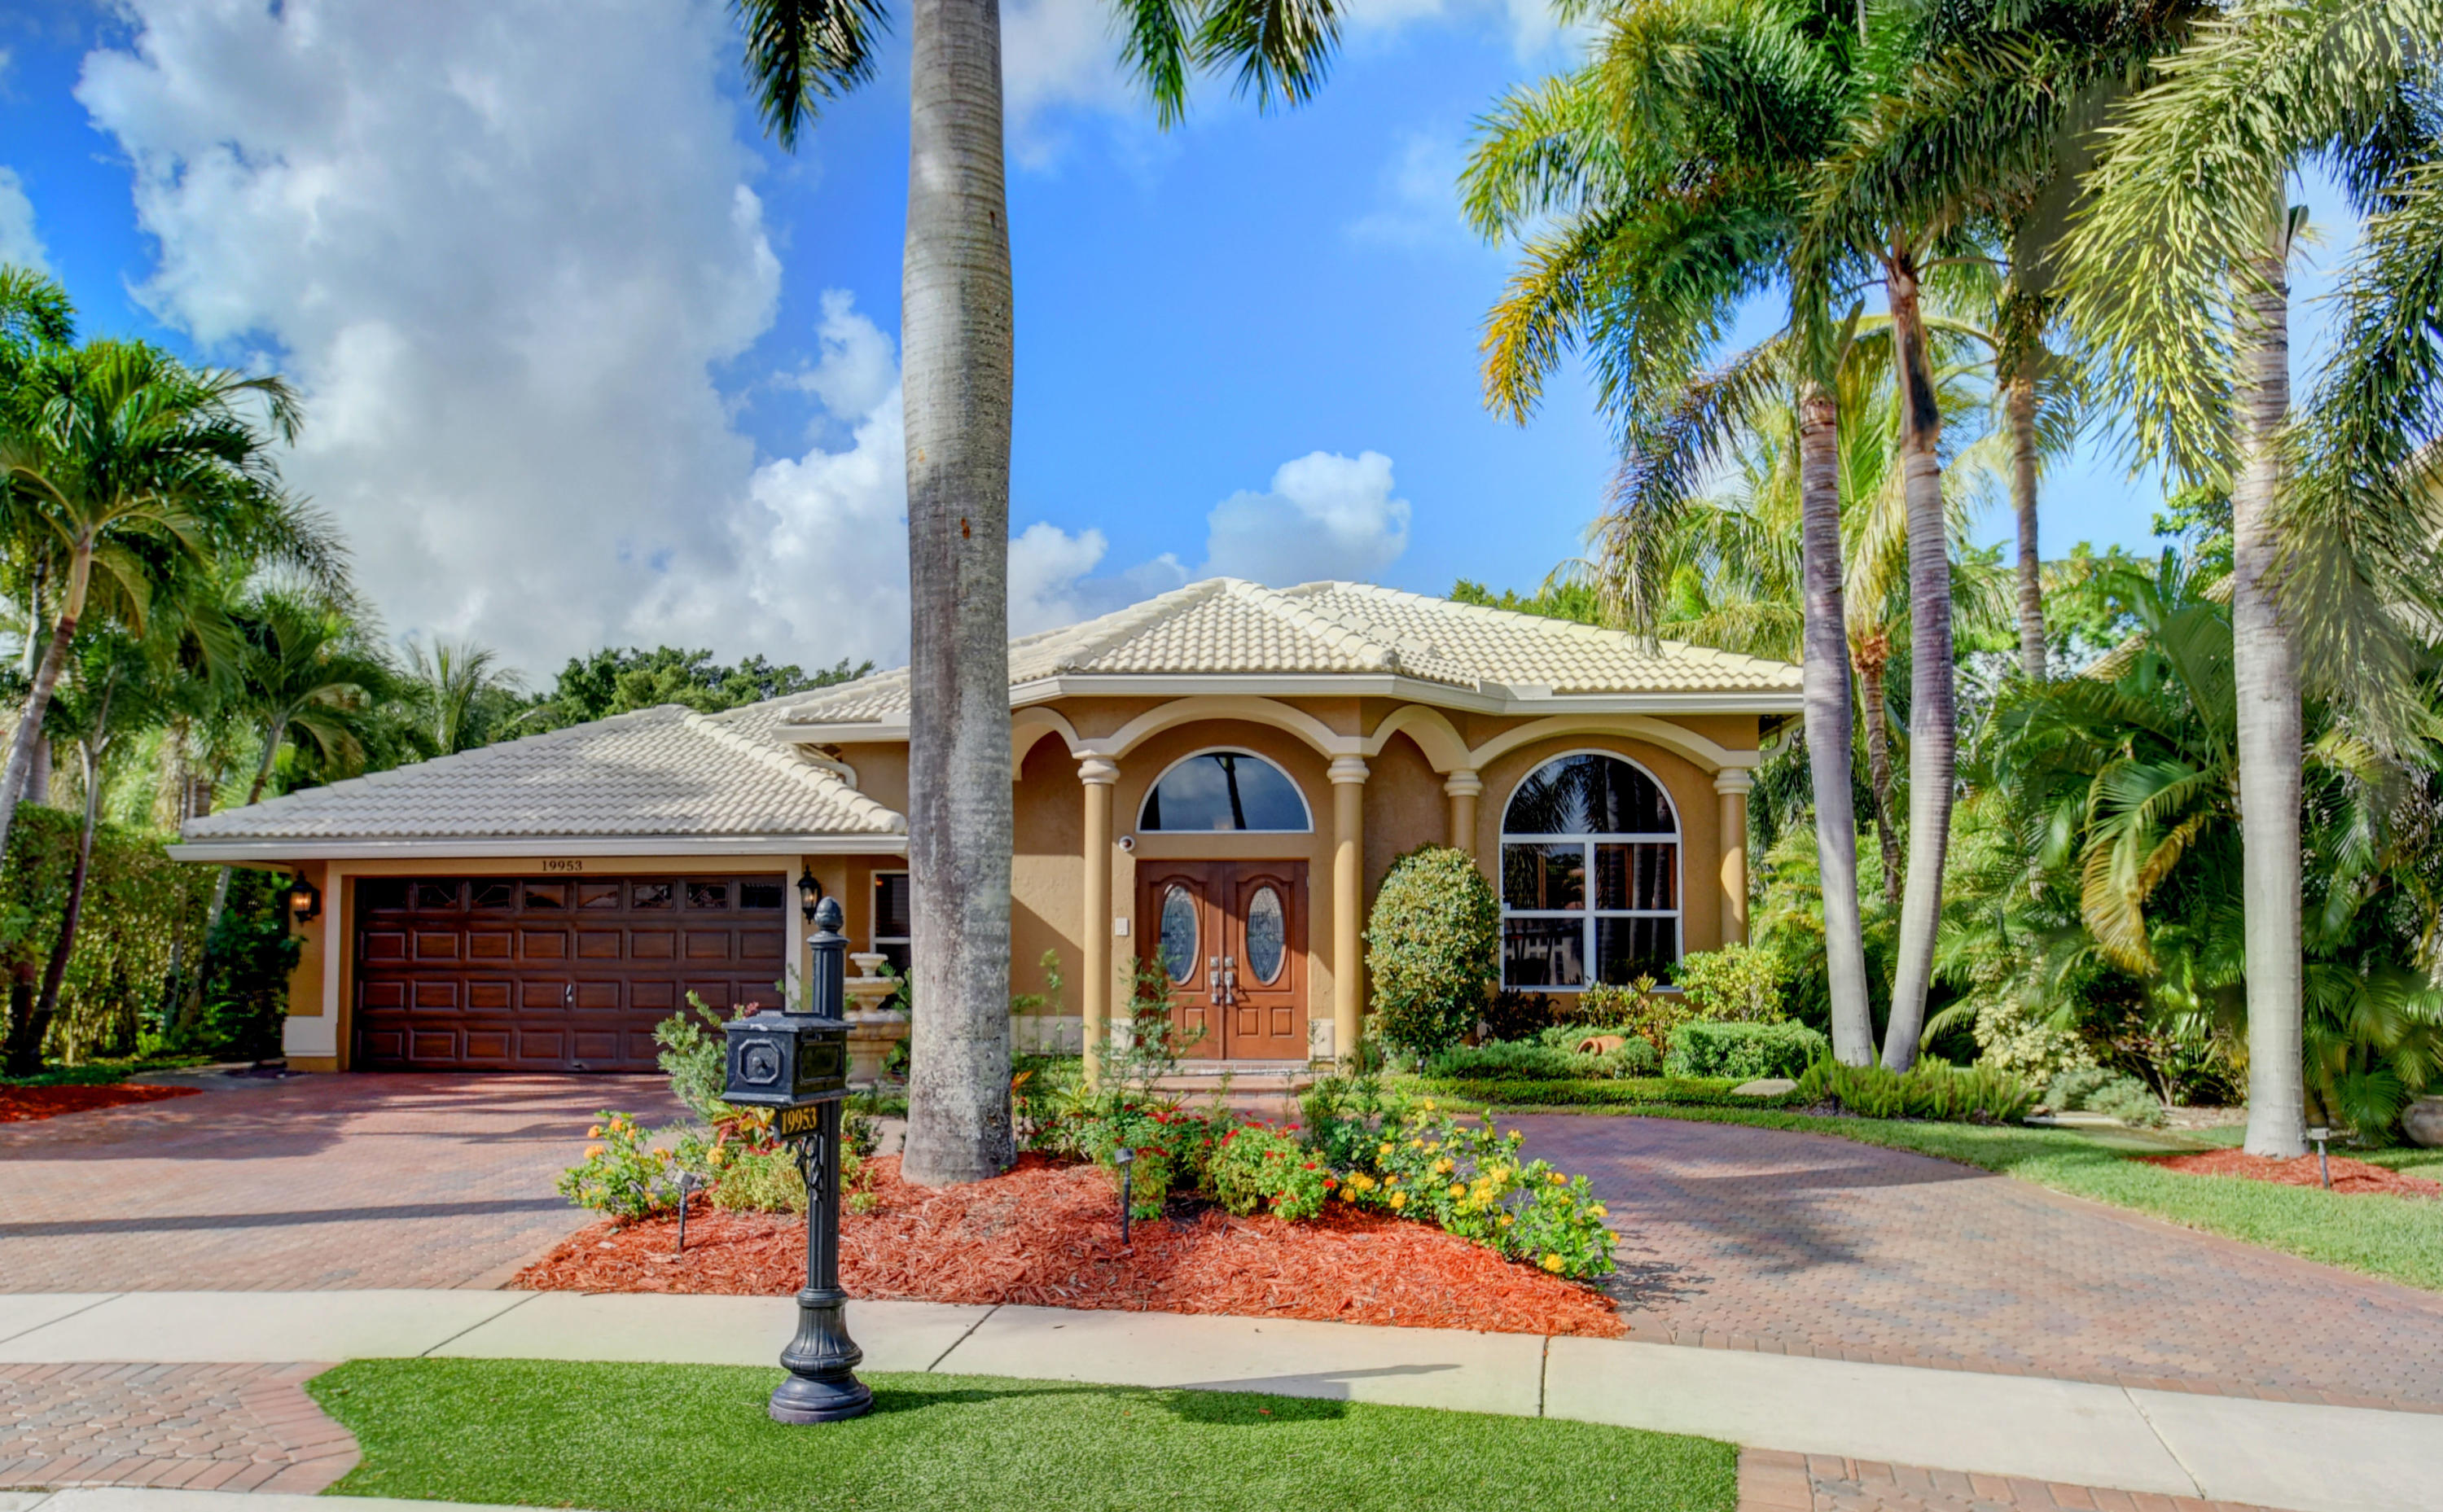 Home for sale in Boca Isles South/boca Isles Boca Raton Florida